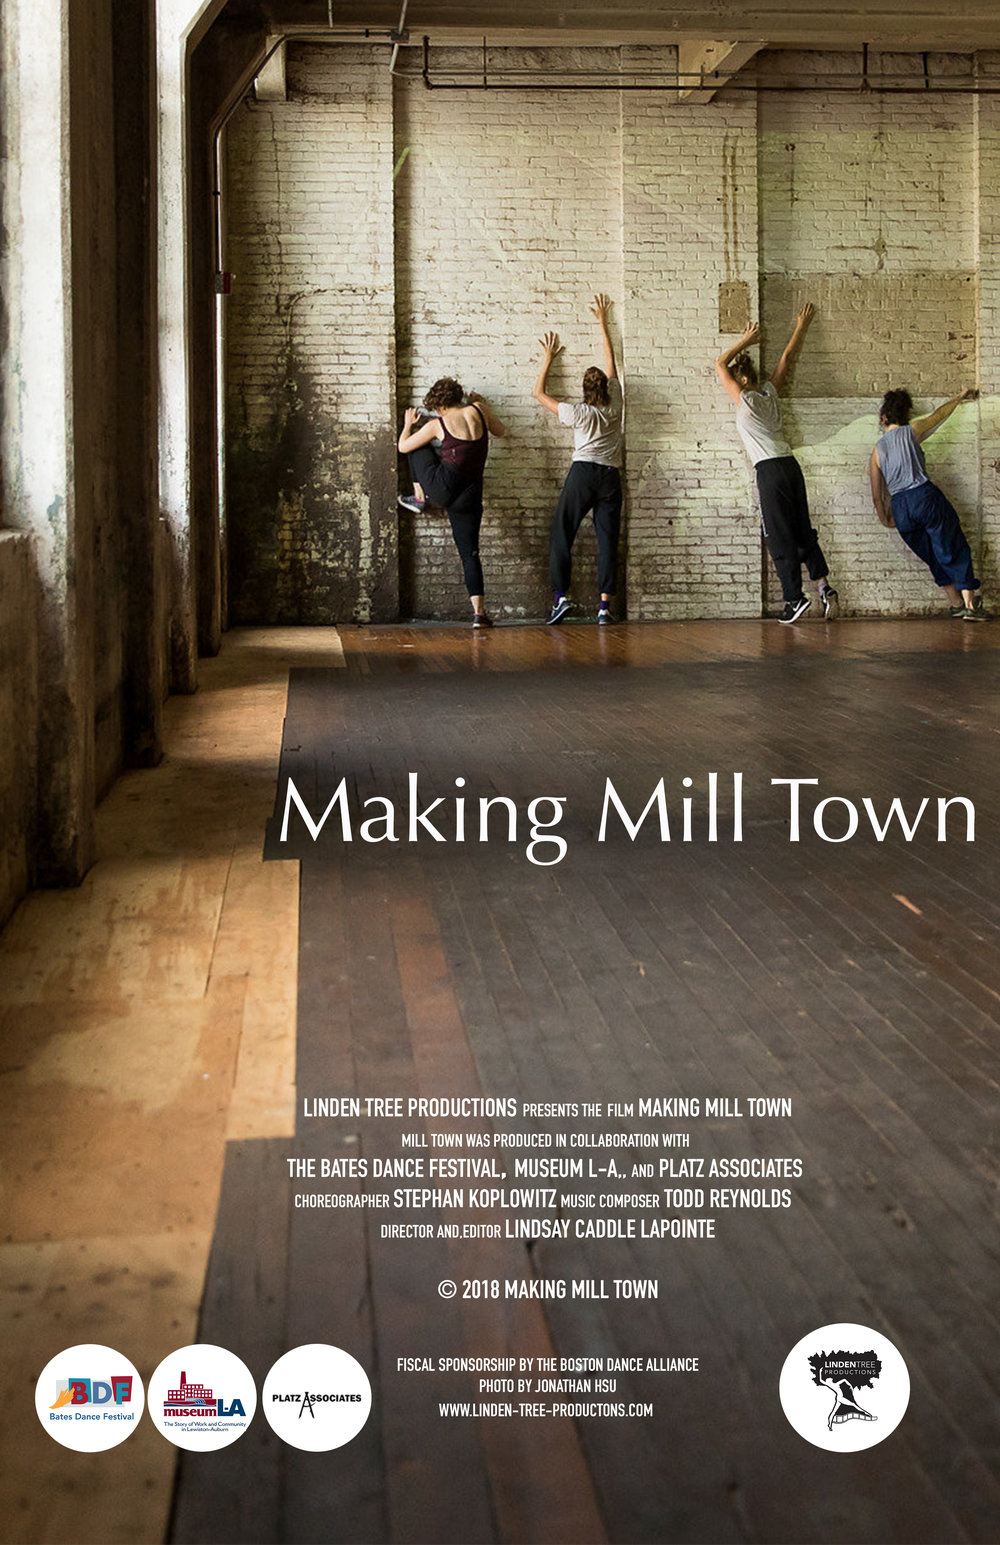 The Making Mill Town video documents the creation of Mill Town, an immersive multimedia performance installation that animates the history and culture of mill life the 19th century.  Through a loose imagistic narrative referencing past, present and future, Mill Town conjures new possibilities for vacant mill buildings that once provided the Lewiston-Auburn communities their backbone and character.  Making Mill Town will serve as a lasting document of this powerful and ephemeral performance that re-animated the work and life of one mill community and inspired audiences with a highly imaginative, site-specific expression of the iconic spaces. -